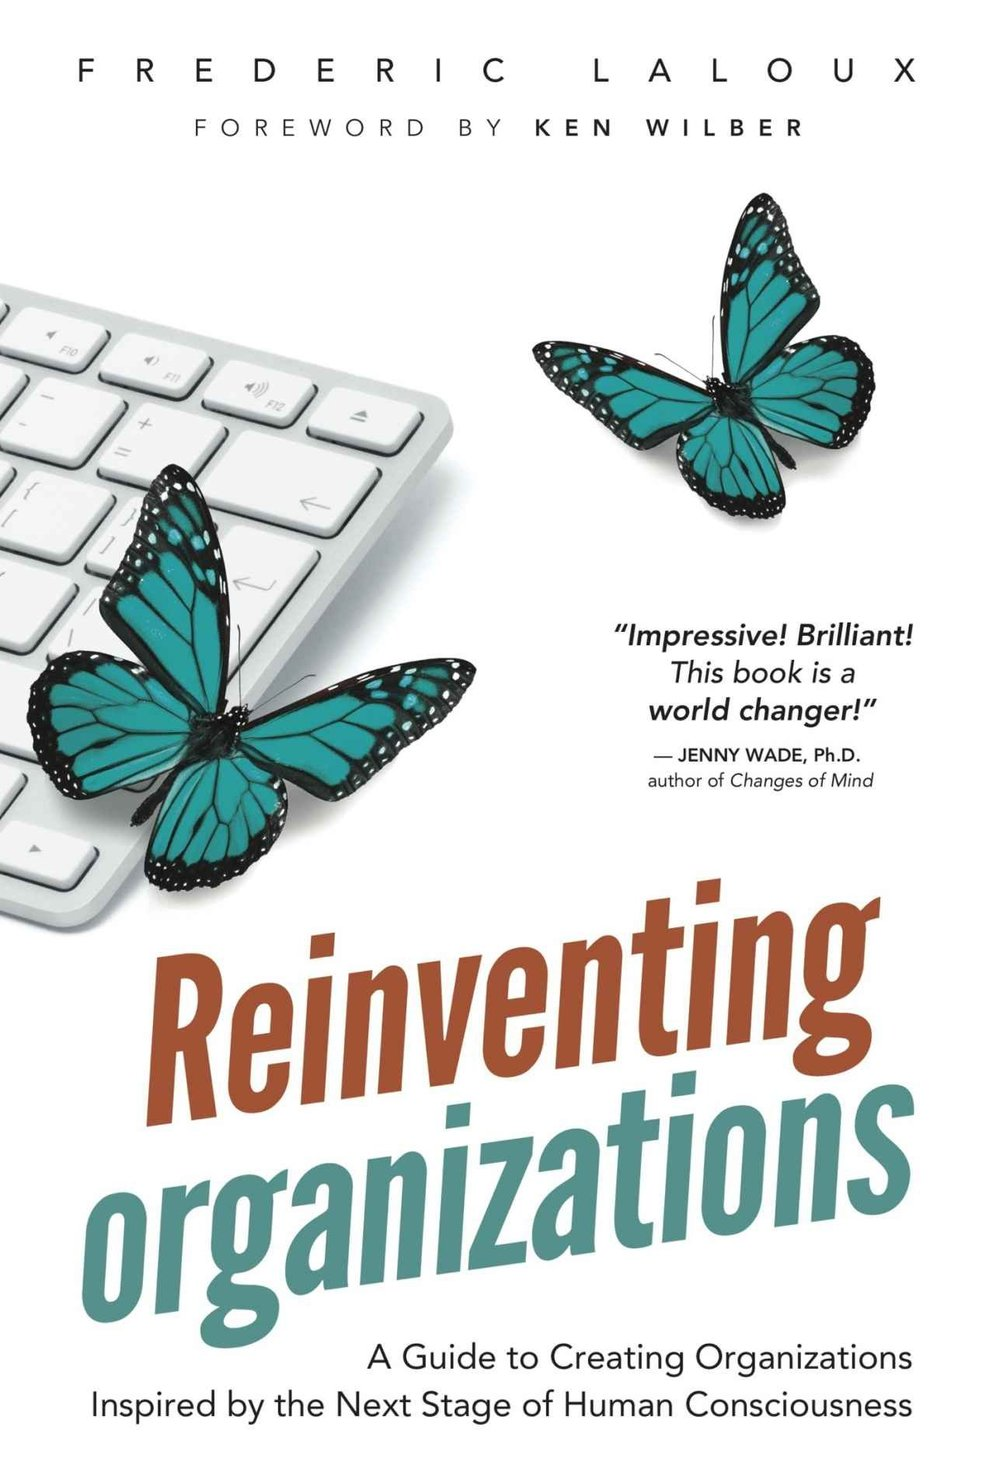 "REINVENTING ORGANIZATIONS BY FREDERIC LALOUX  Frederic's book  Reinventing Organizations    has sold more than 200,000 copies and is considered by many to be the most influential business book of this decade. Described as ""groundbreaking,"" ""world-changing,"" and ""a leap in management thinking"" by some of the most respected scholars of management and human development, it has sparked a global movement of organizations adopting radically more powerful and soulful management practices. A former Associate Partner with McKinsey & Company, Laloux holds an MBA from INSEAD, and a degree in coaching from Newfield Network in Boulder, Colorado.   Mpre pm Reinventing Organizations"